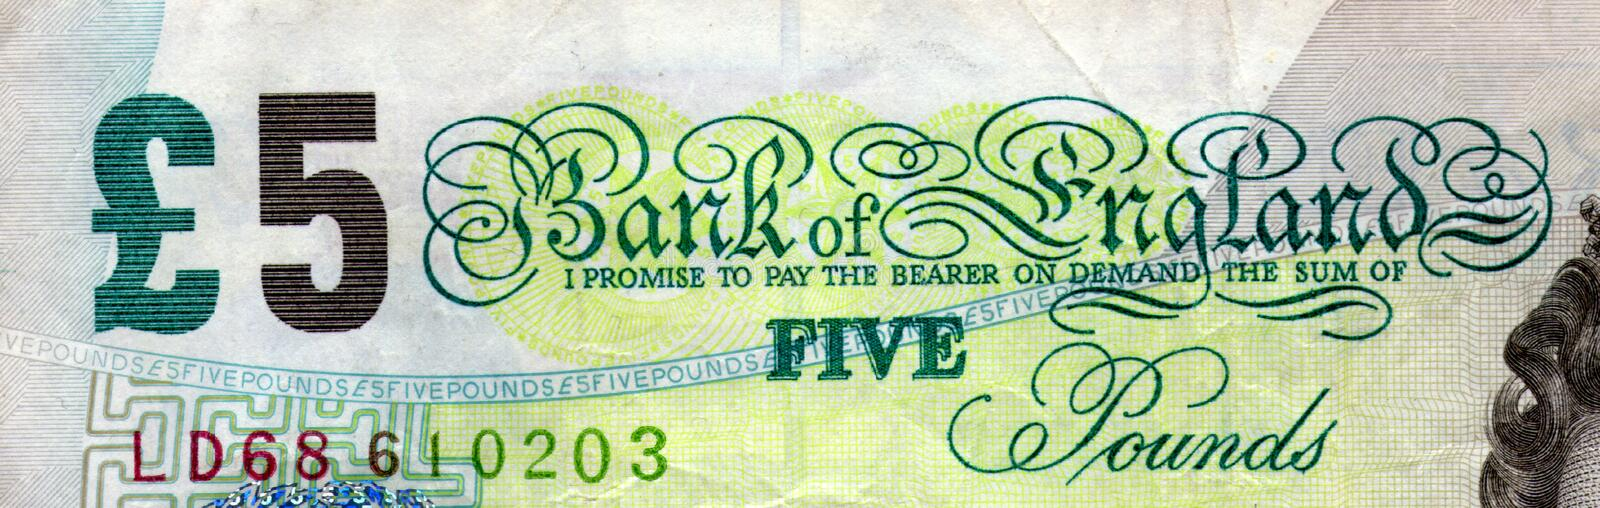 Top of £5 note. The top corner of an English £5 note royalty free stock photography